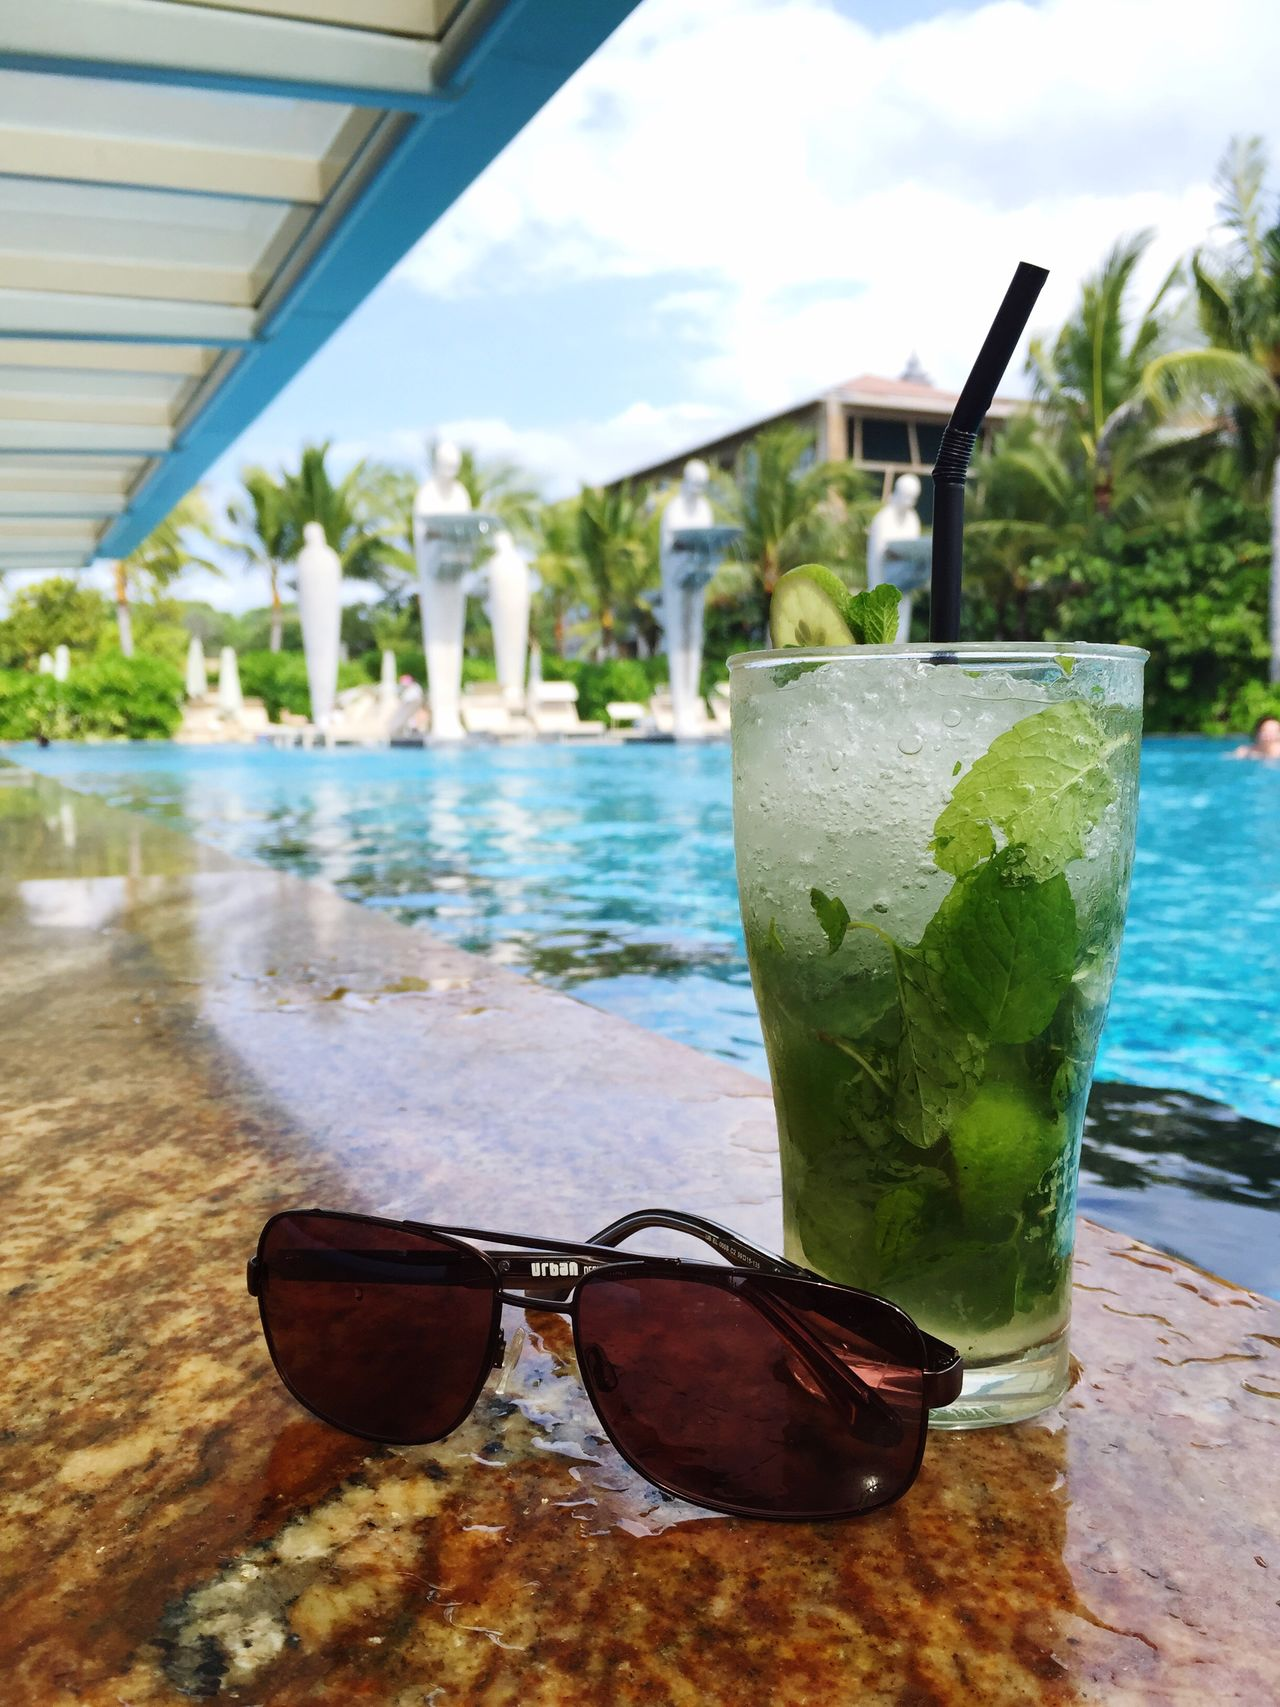 Relax and chilling at the pool Showcase July